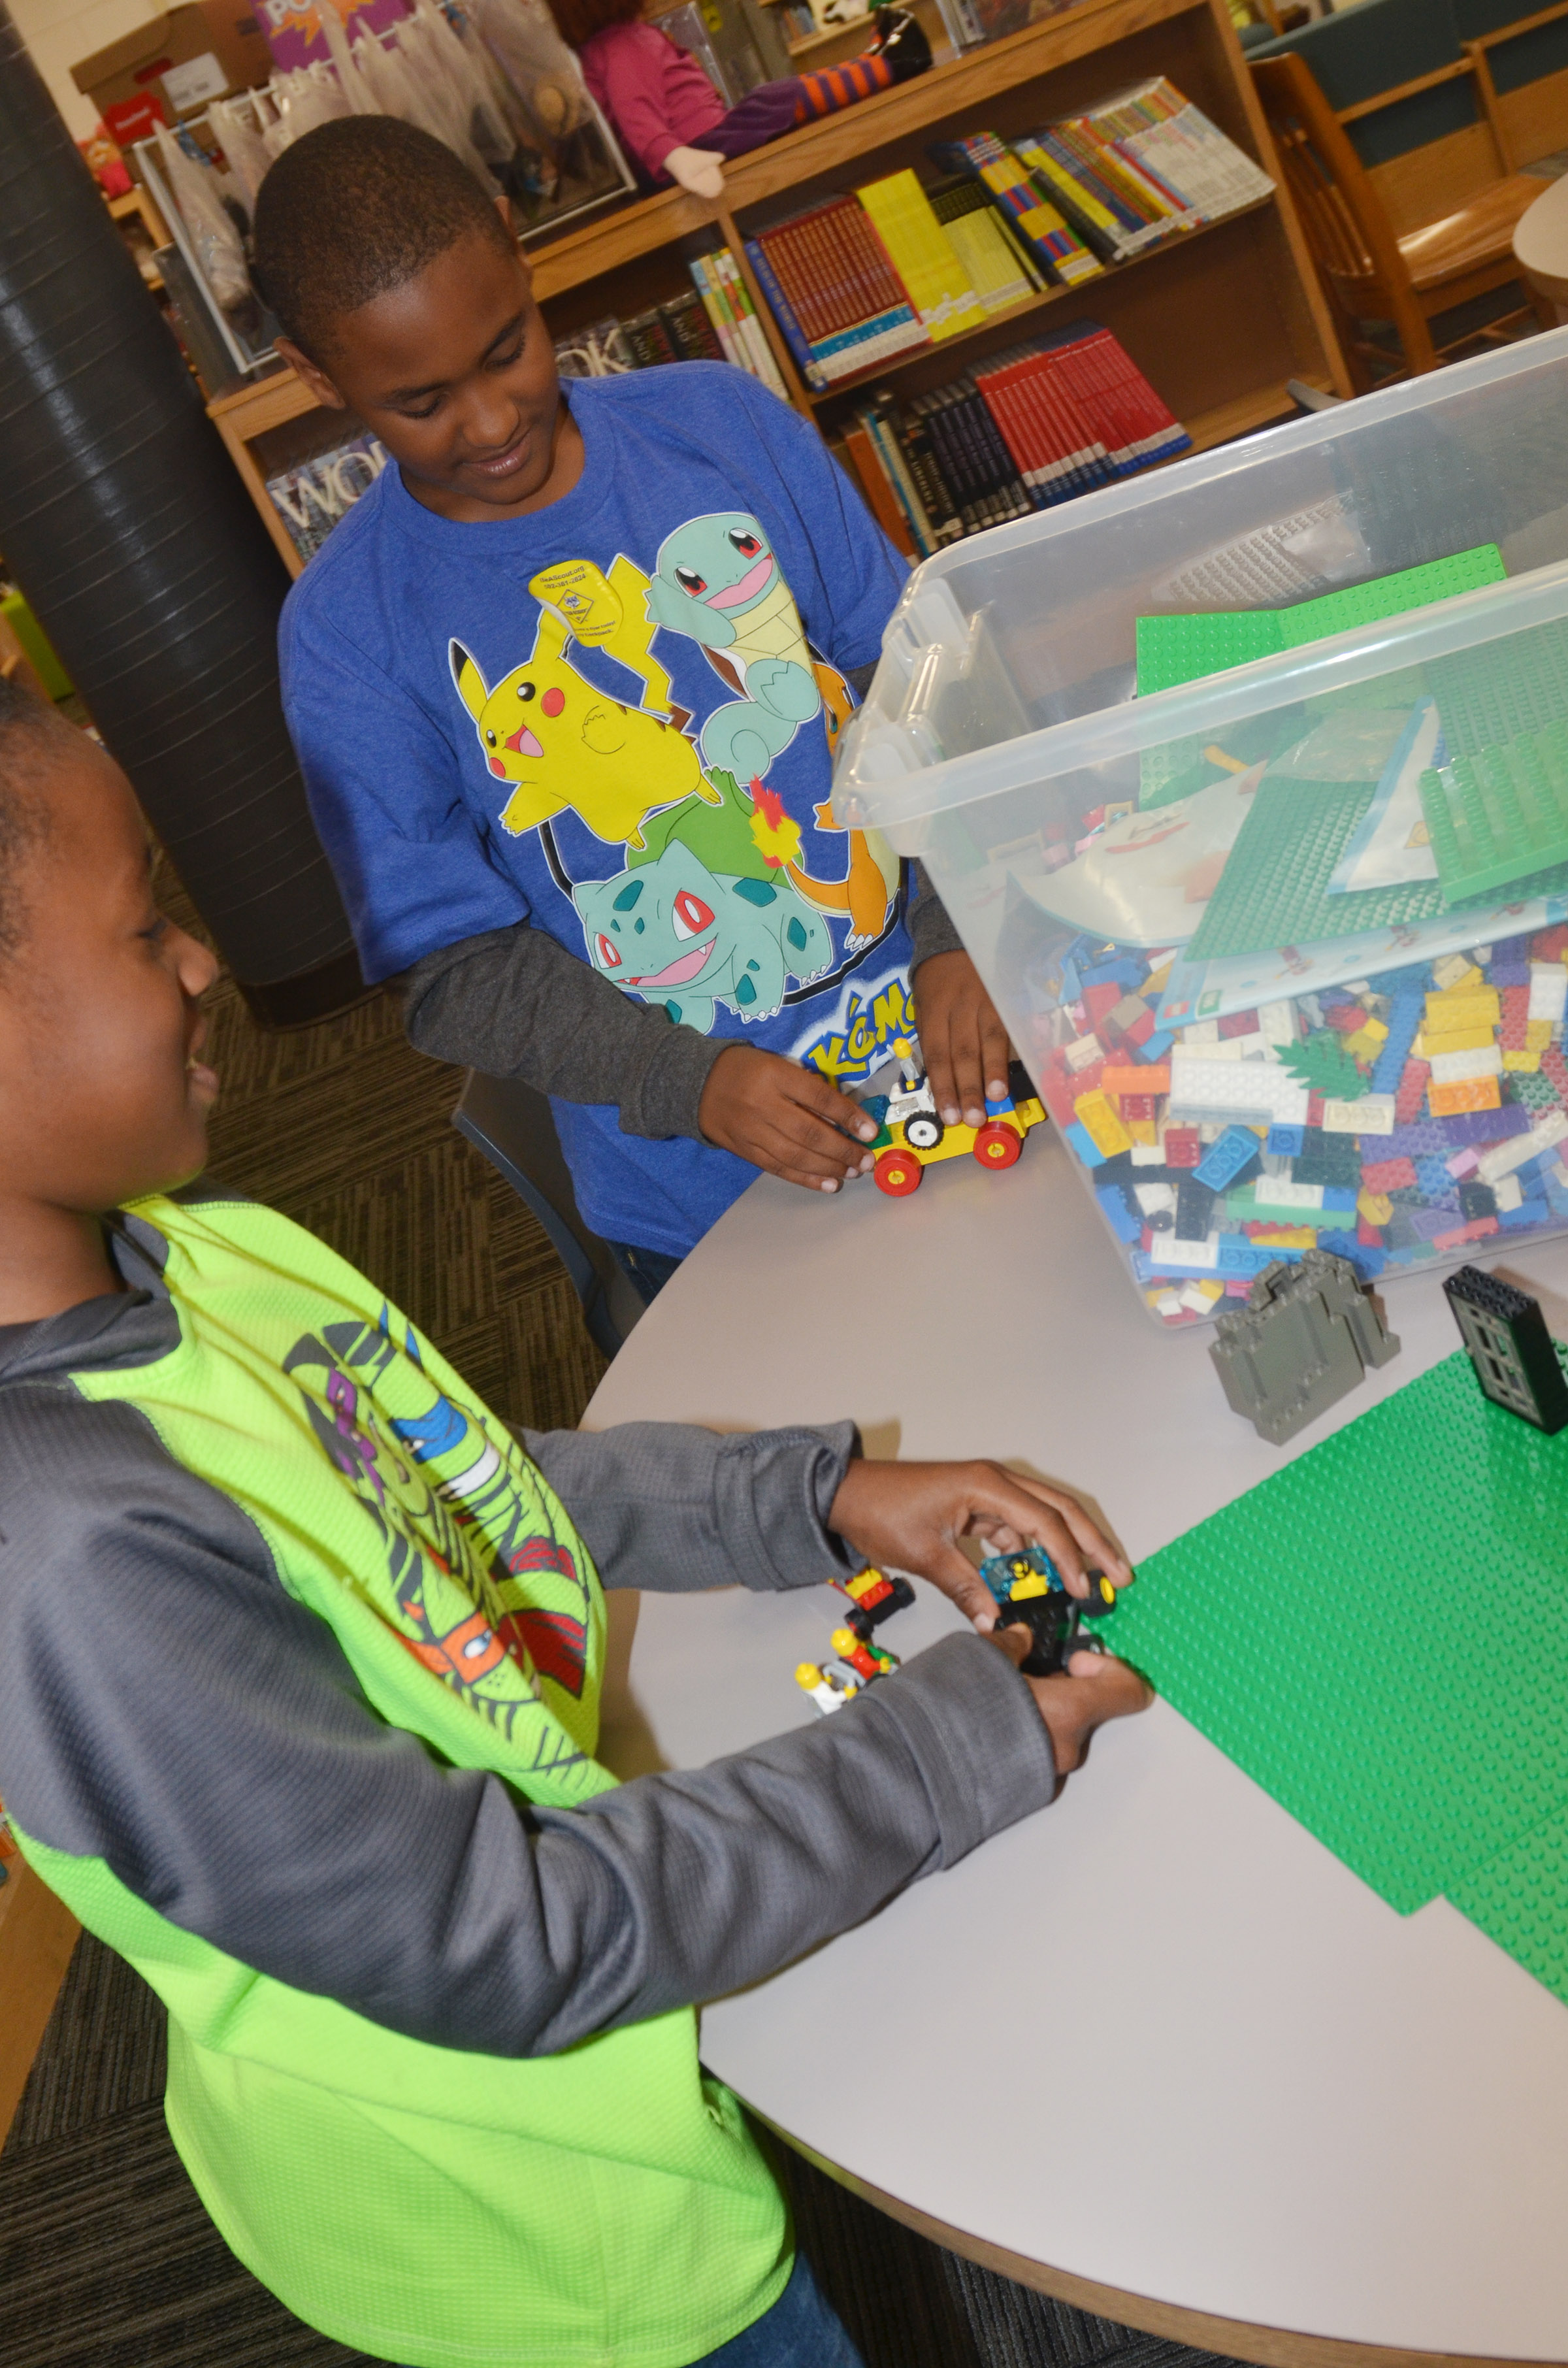 CES fourth-graders John Gholston, at left, and Shaiden Calhoun build together with Legos.